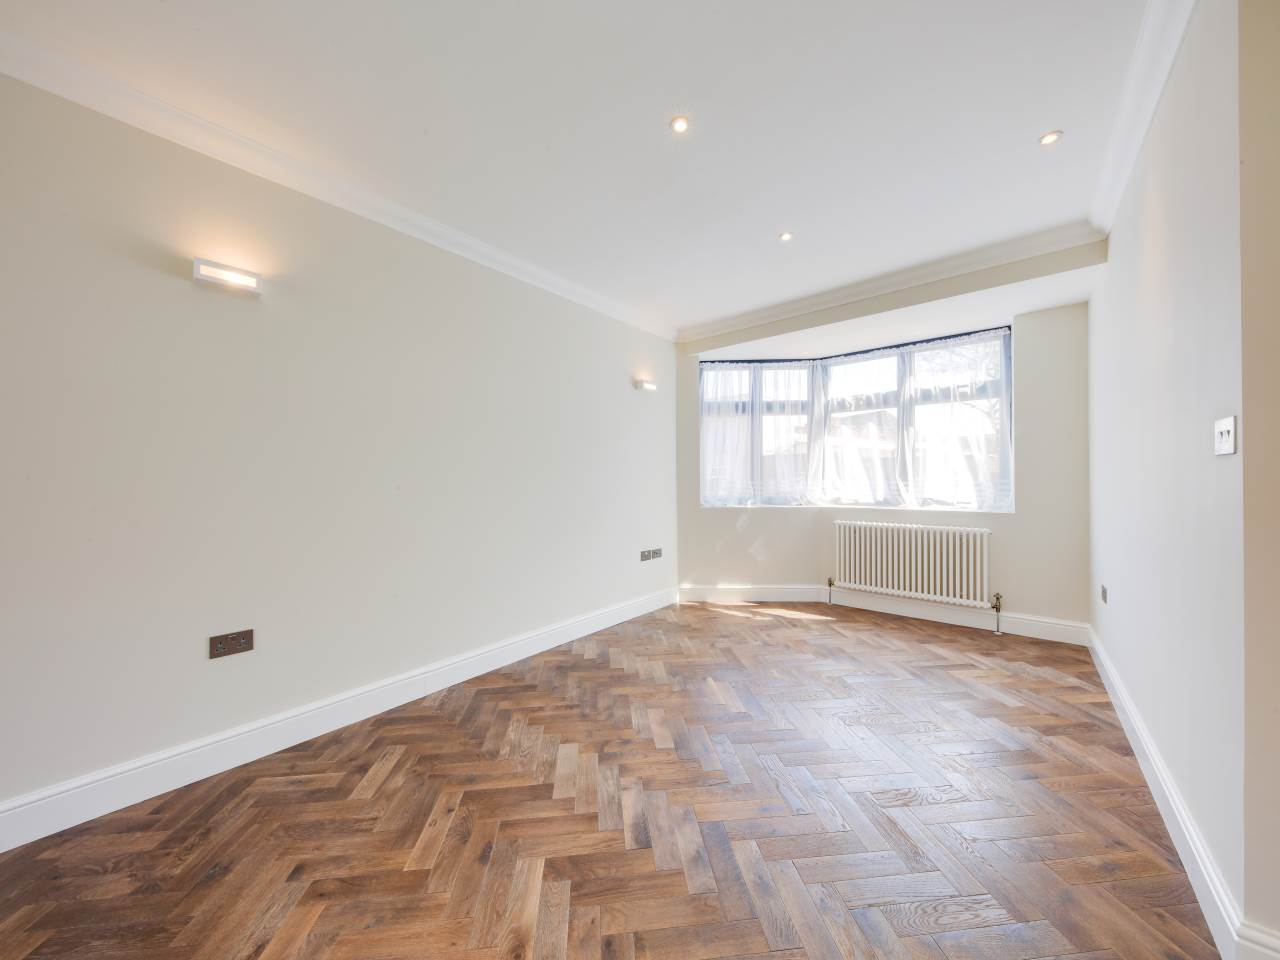 3 bed house for sale in Shernhall Street , Walthamstow   - Property Image 7